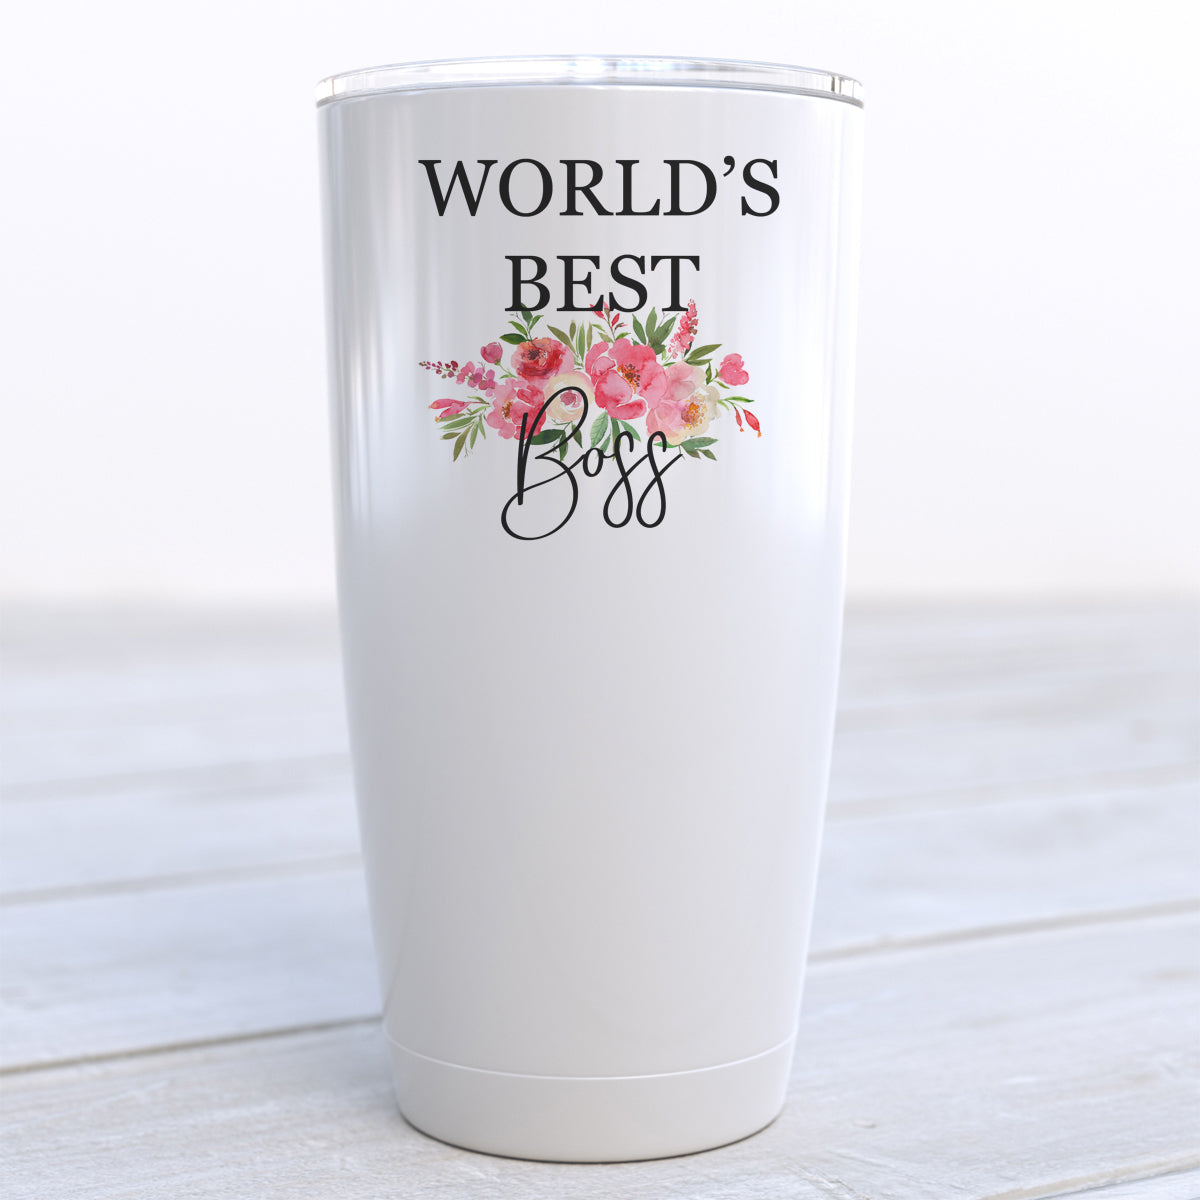 World's Best Boss Travel Cup